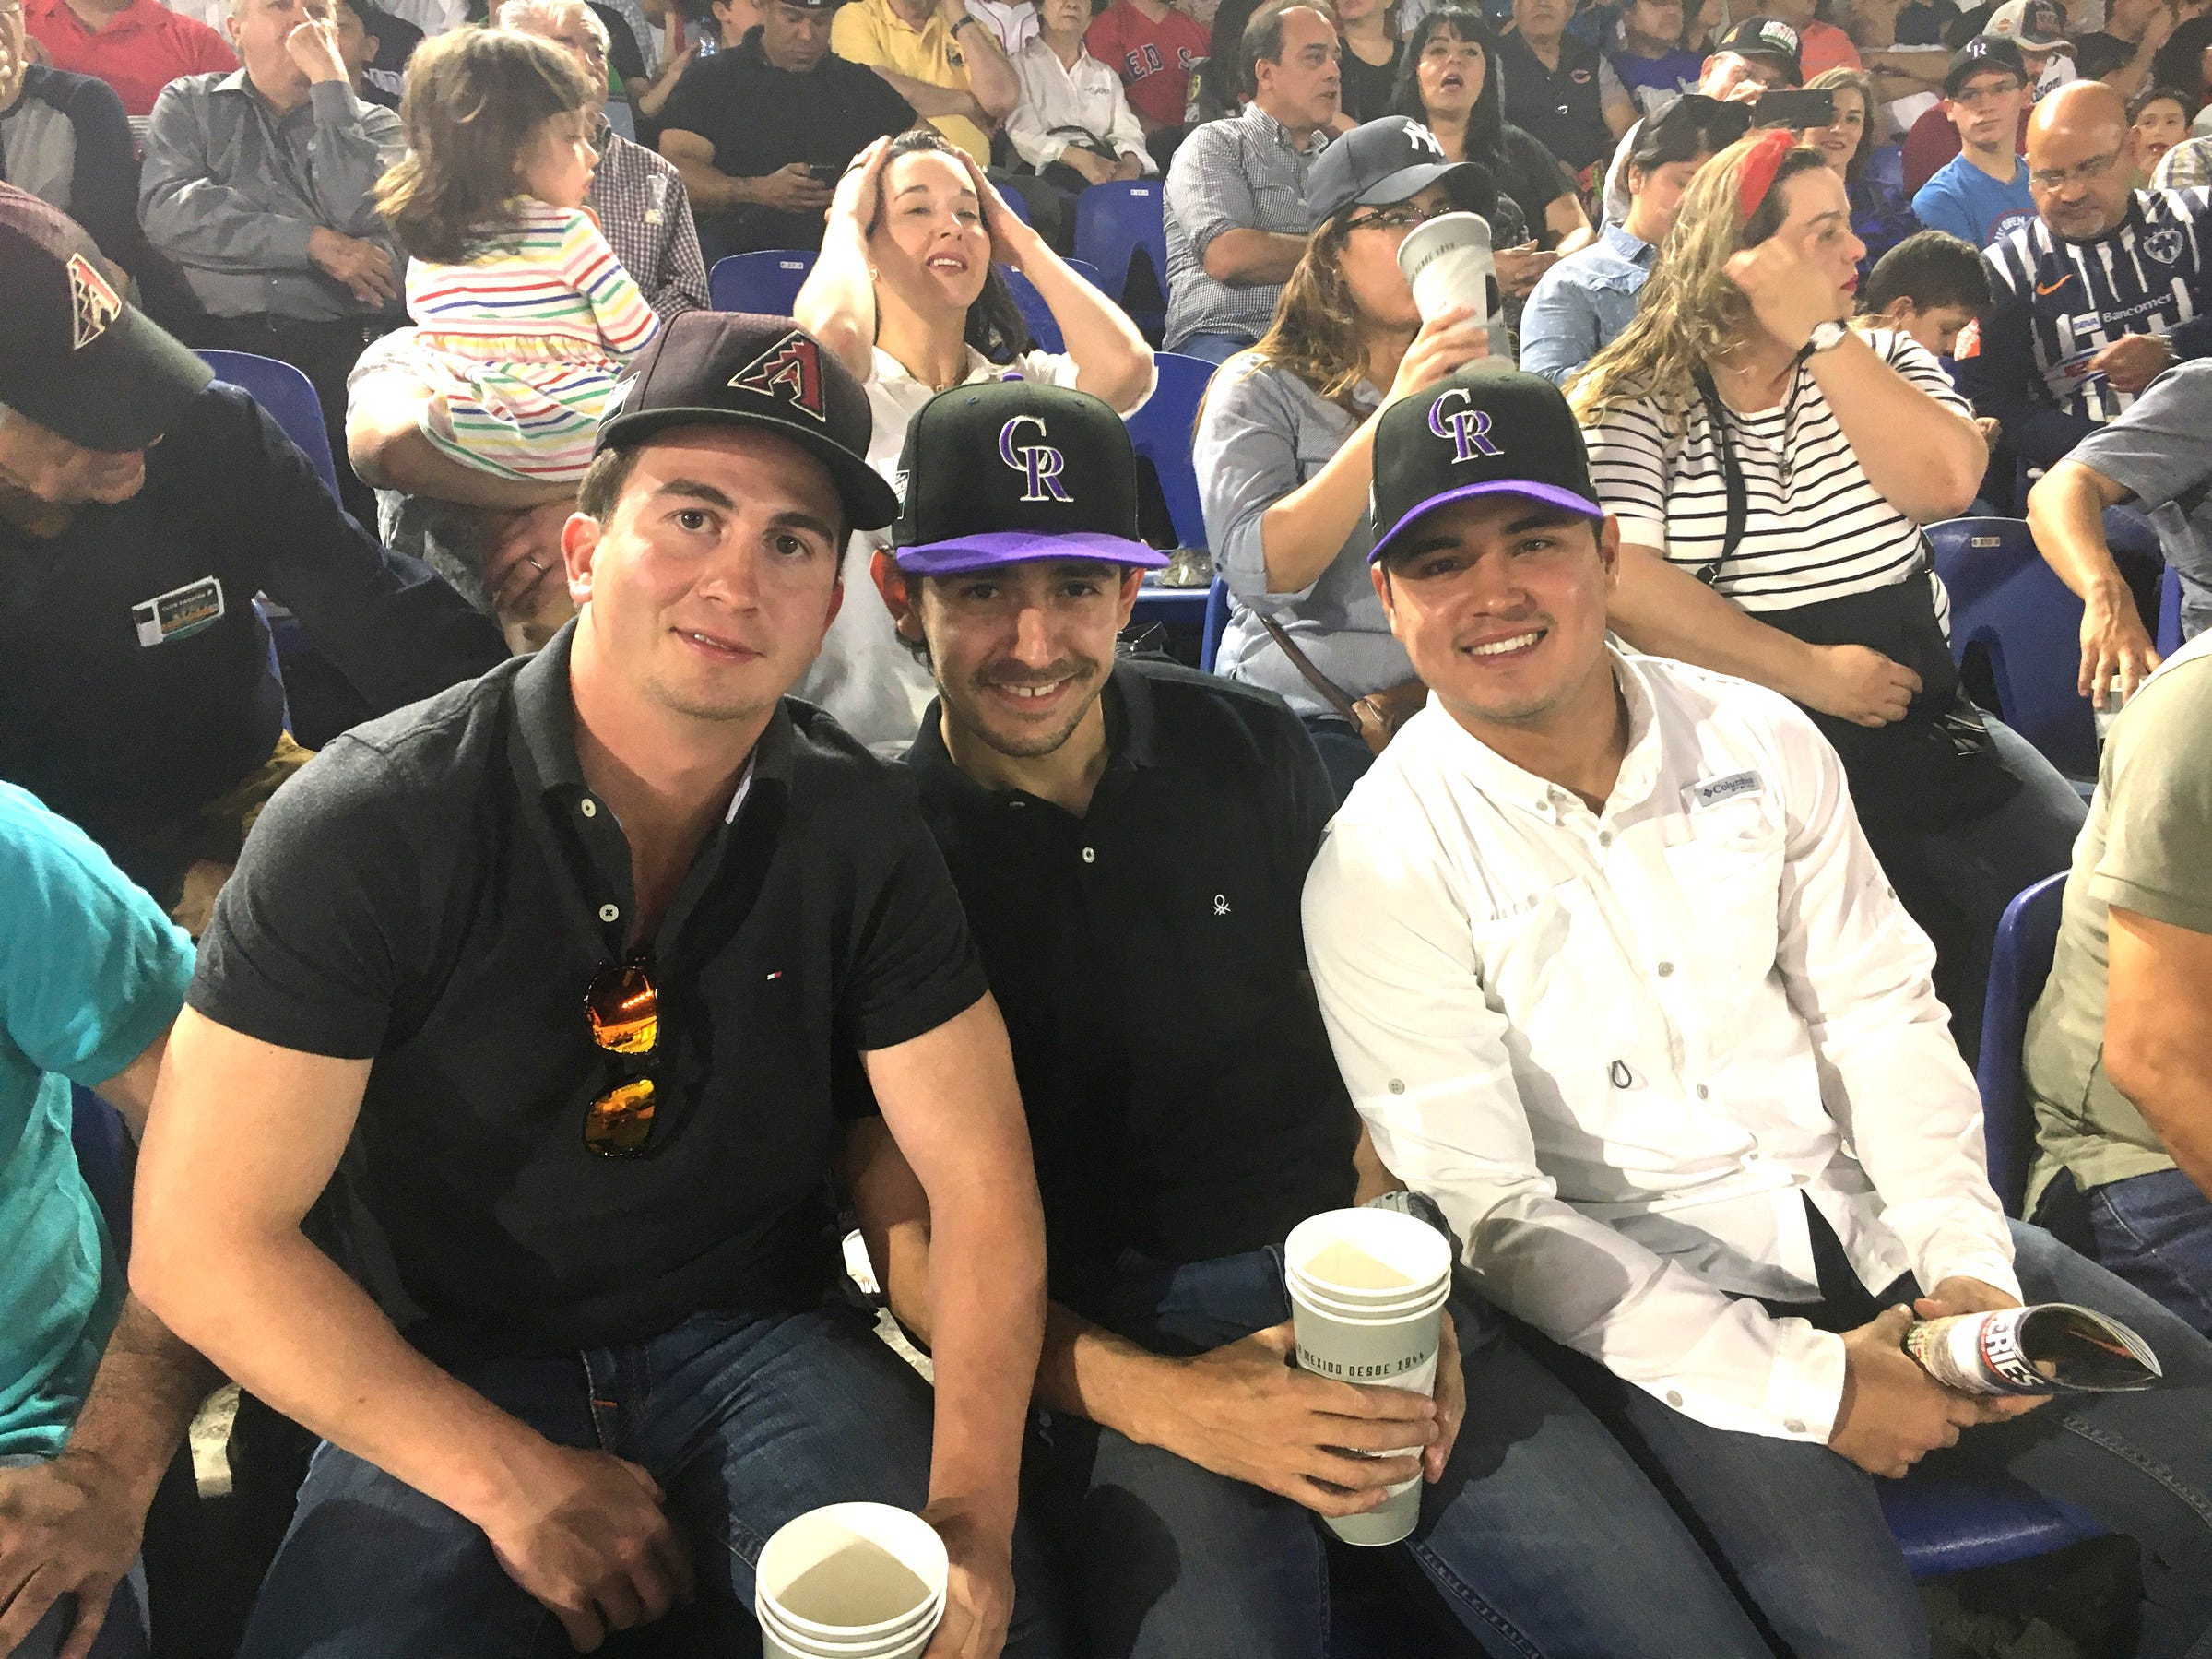 The Arizona Diamondbacks and the Colorado Rockies made many new fans when they played two spring-training games in Monterrey, Mexico, in March 2019.